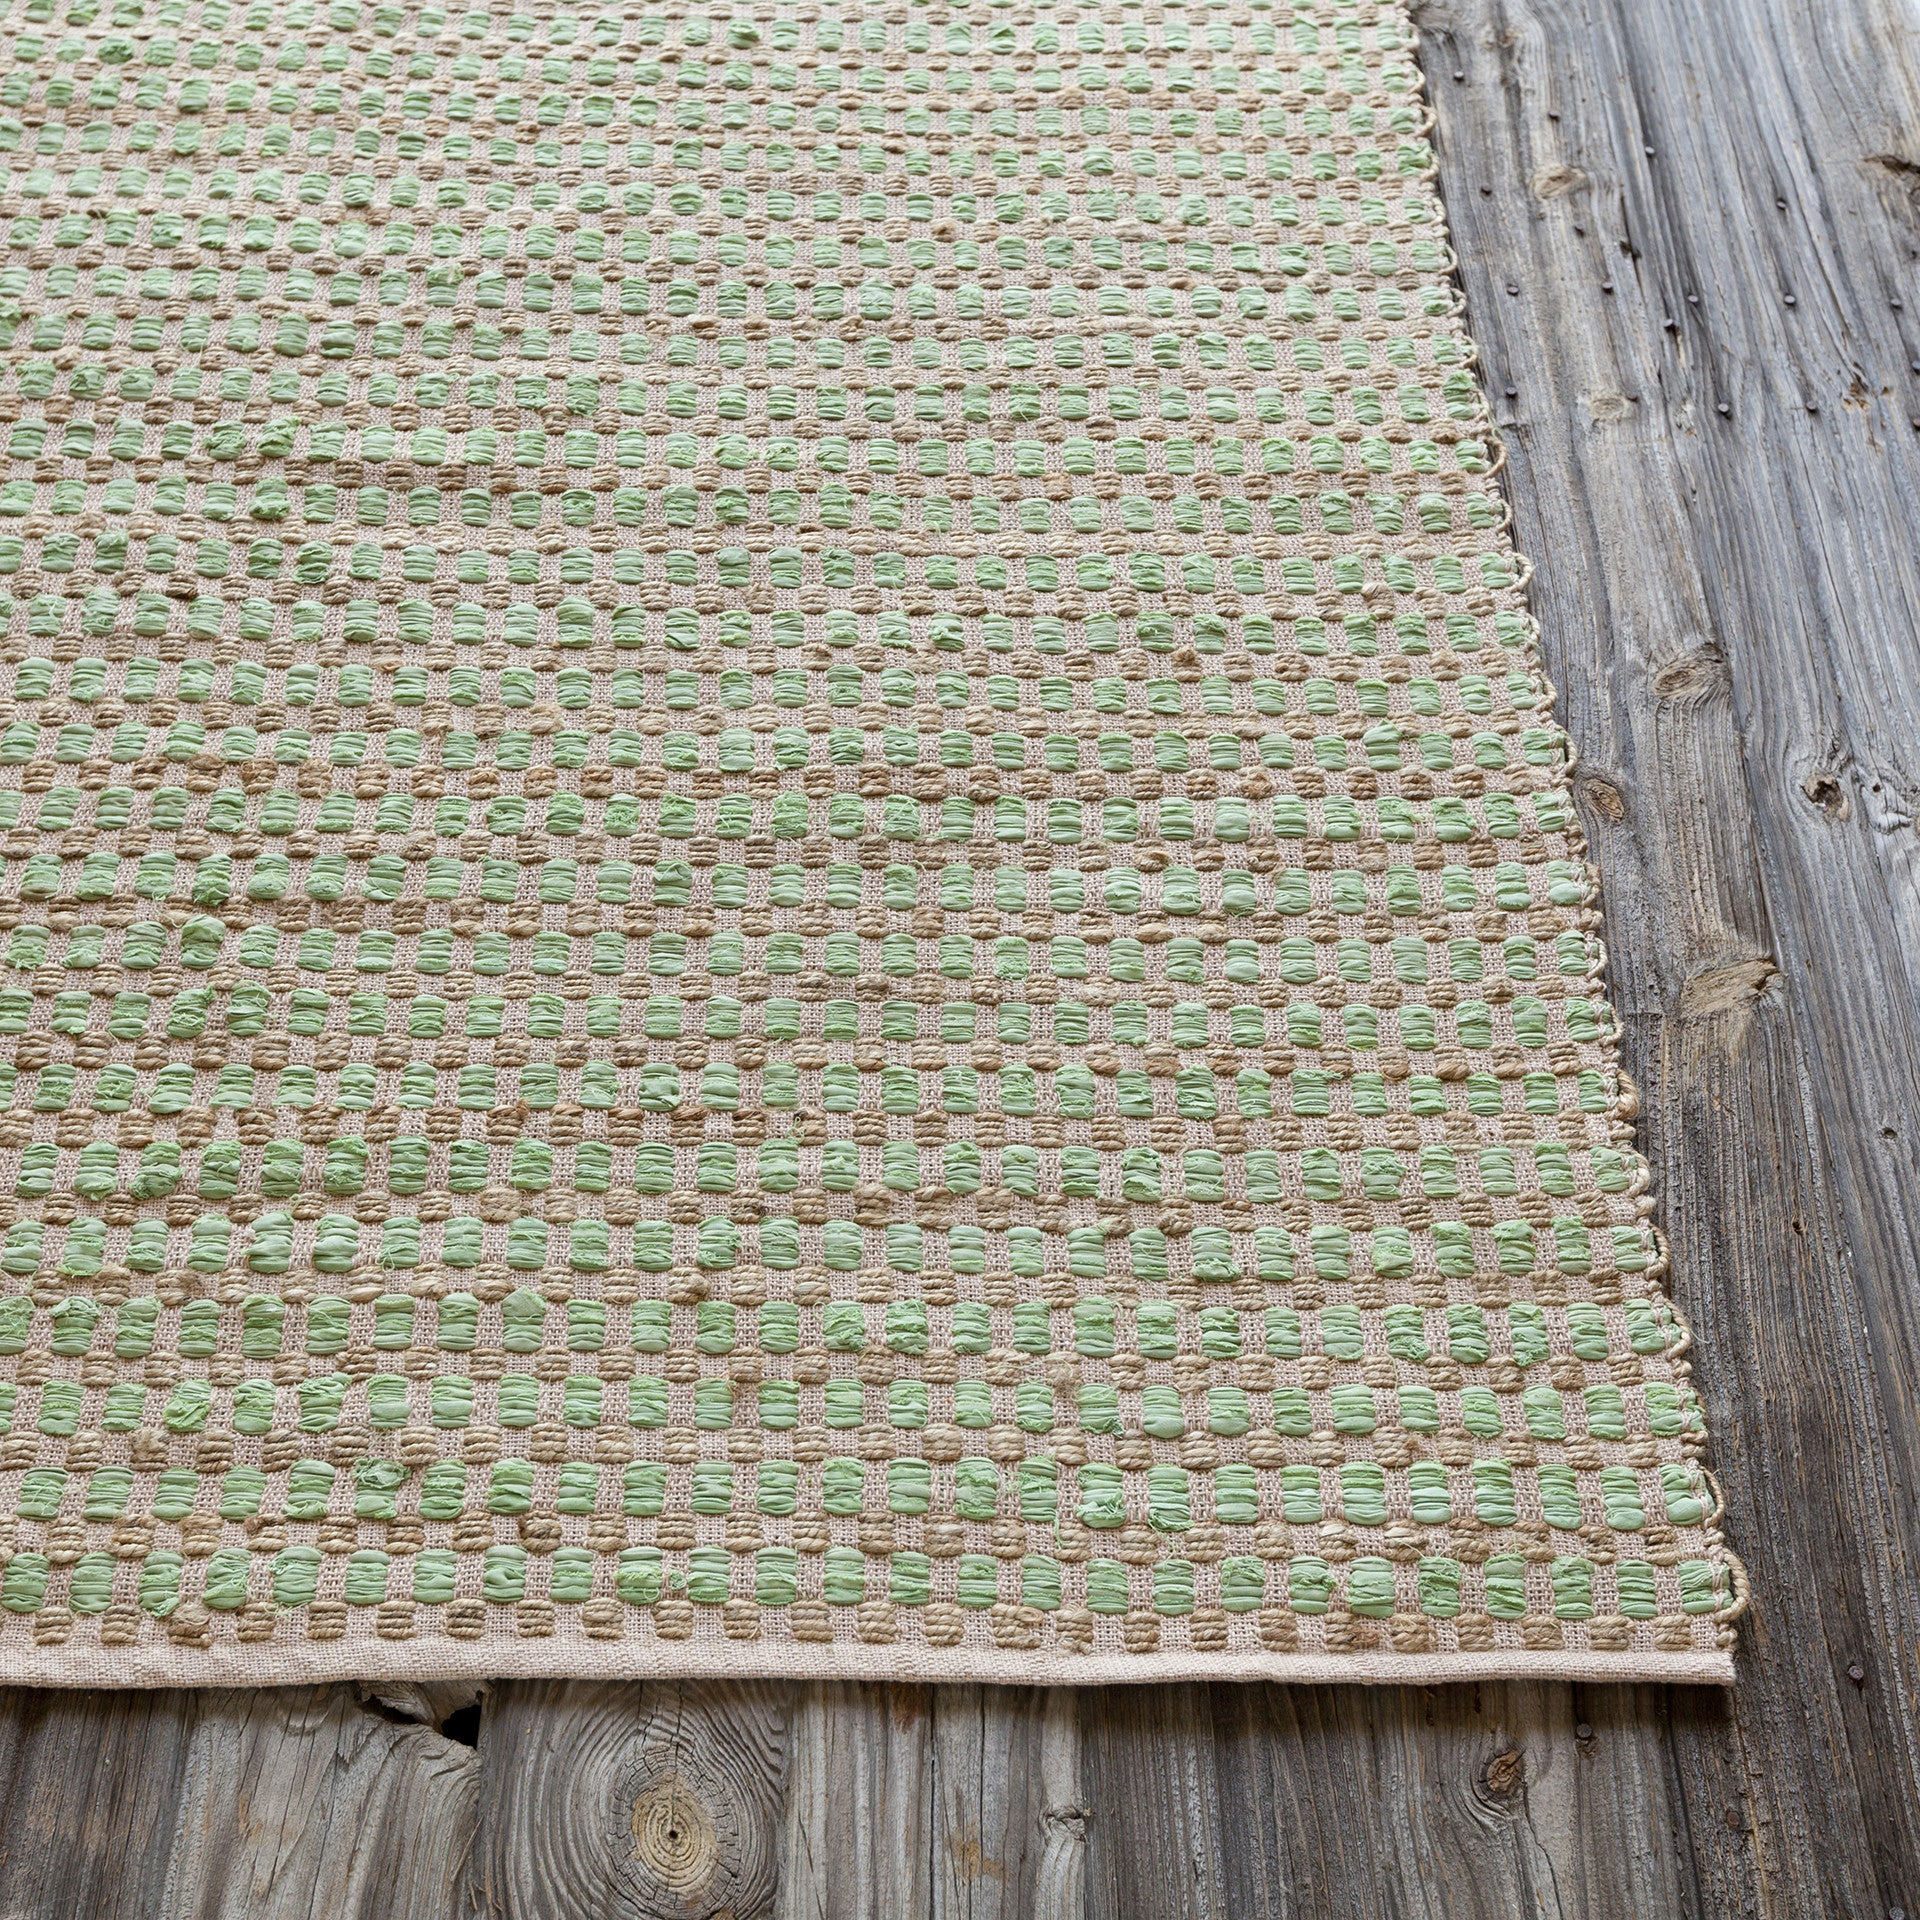 Jazz collection hand woven area rug in tan green design for Decor international handwoven rugs